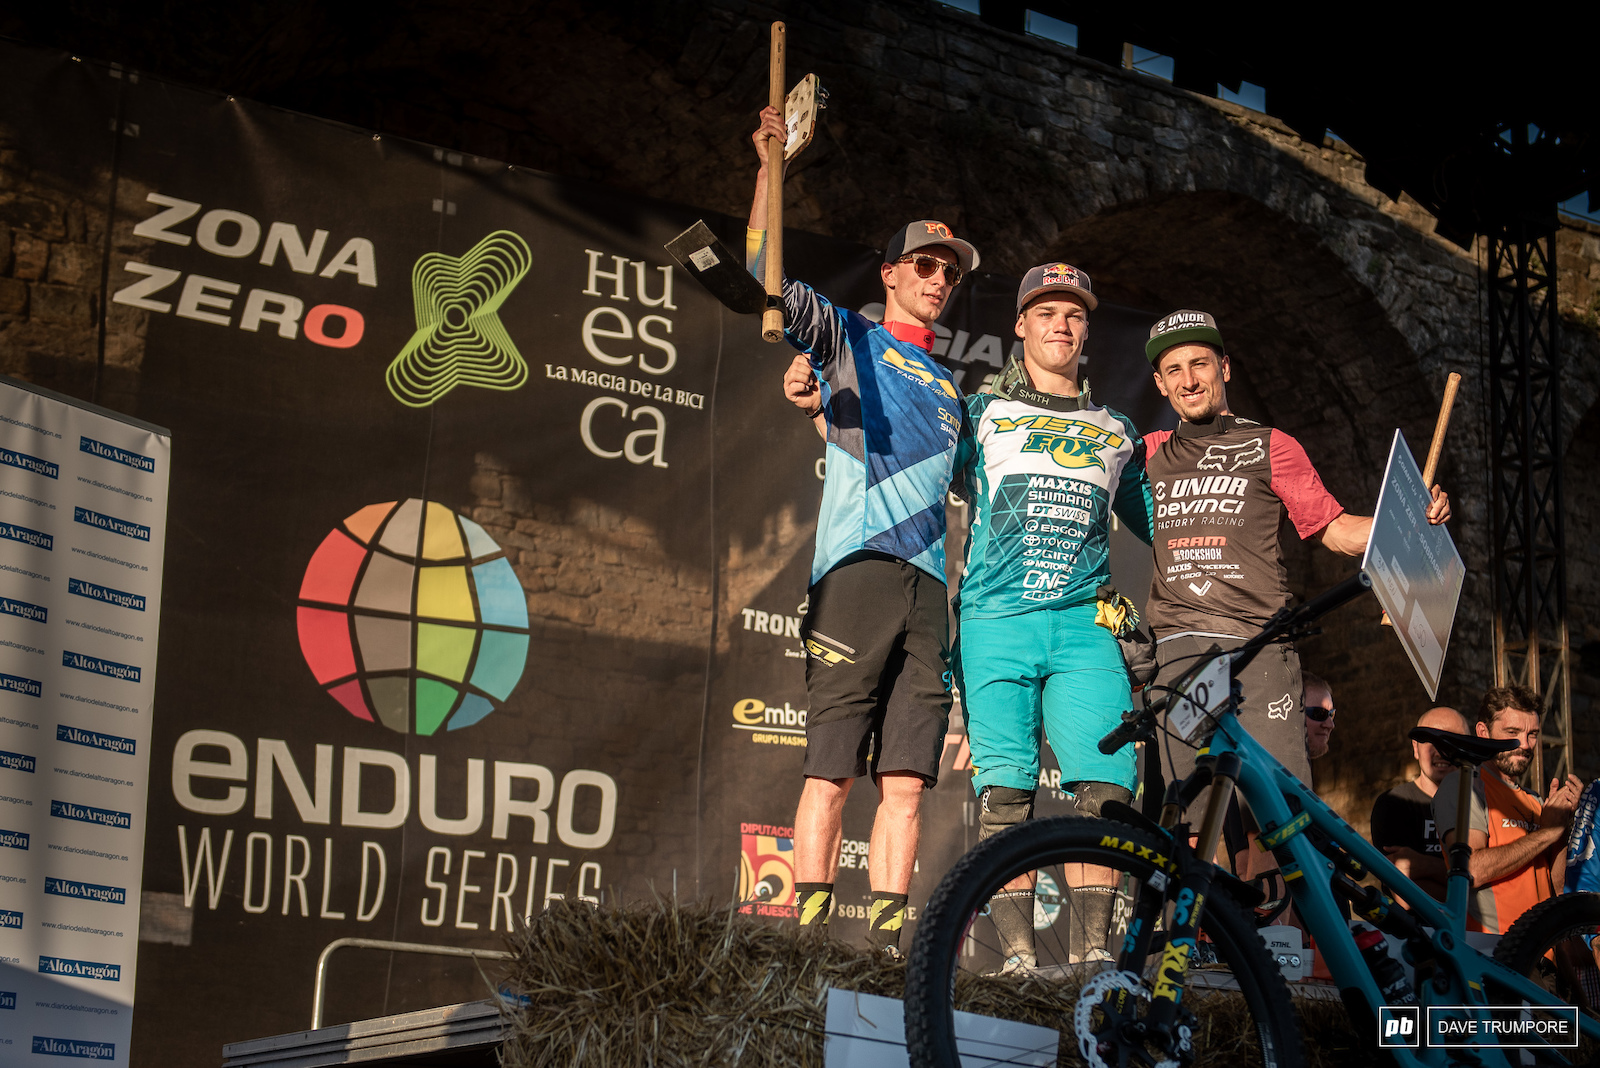 Richie Rude shares the top steps of the podium with Martin Maes and Damien Oton.